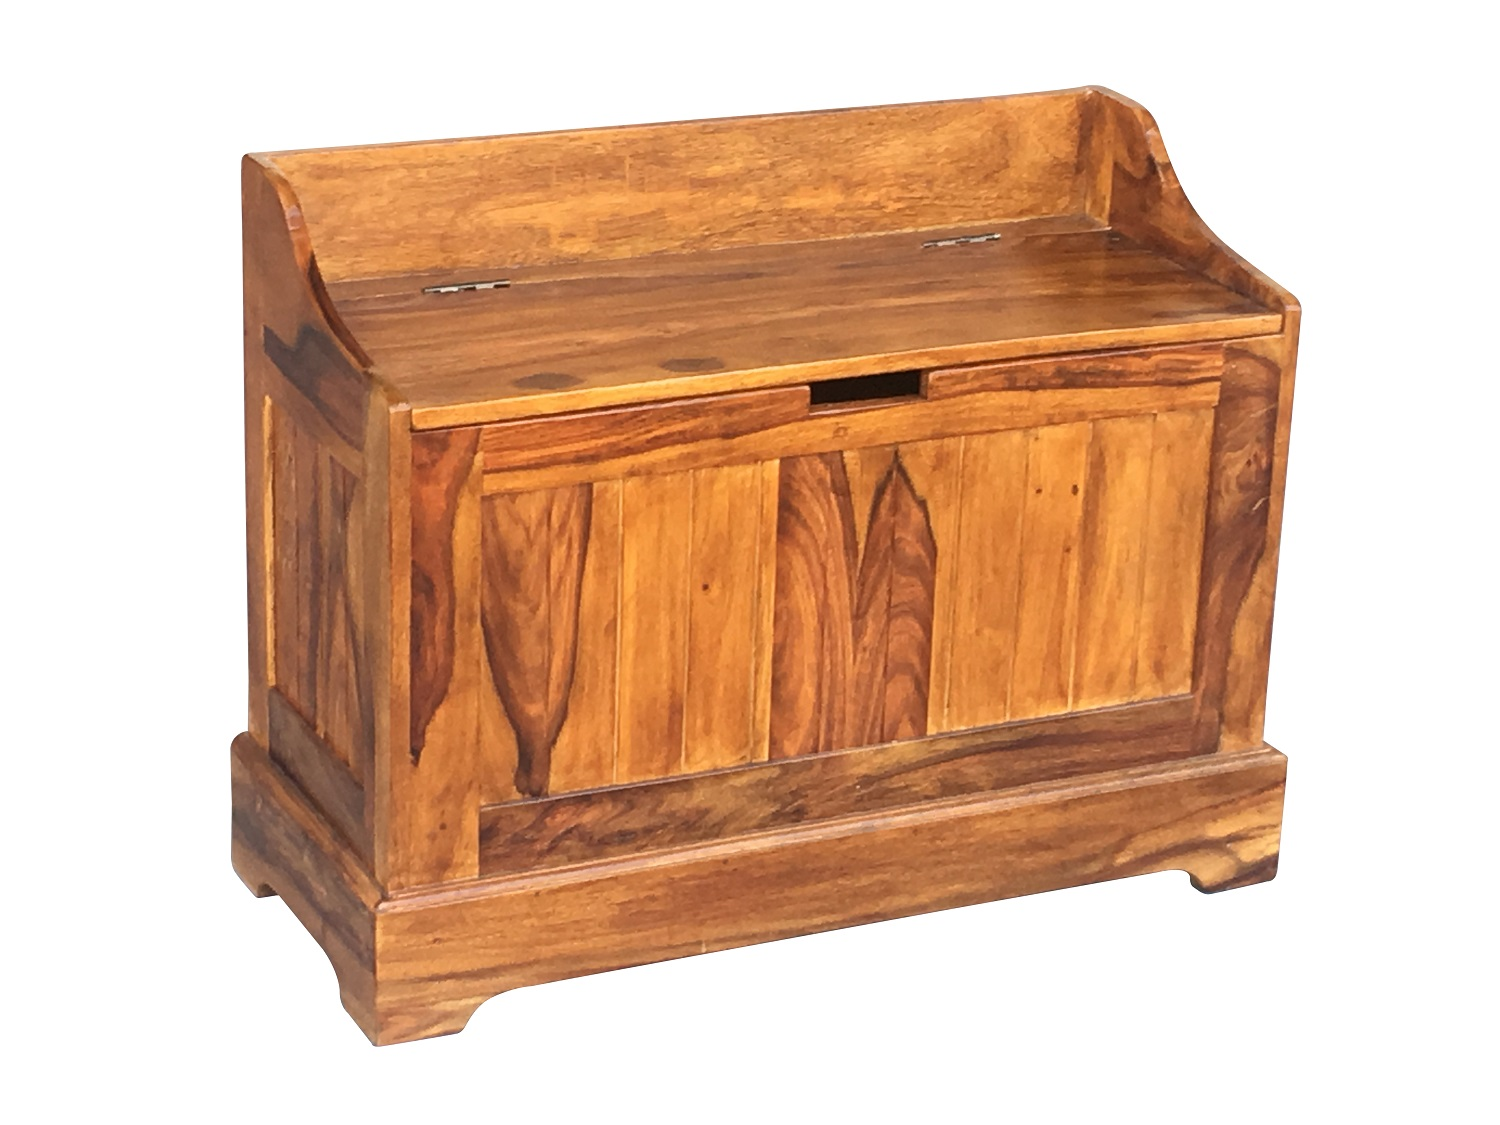 Sensational Small Sheesham Wood Storage Bench Caraccident5 Cool Chair Designs And Ideas Caraccident5Info